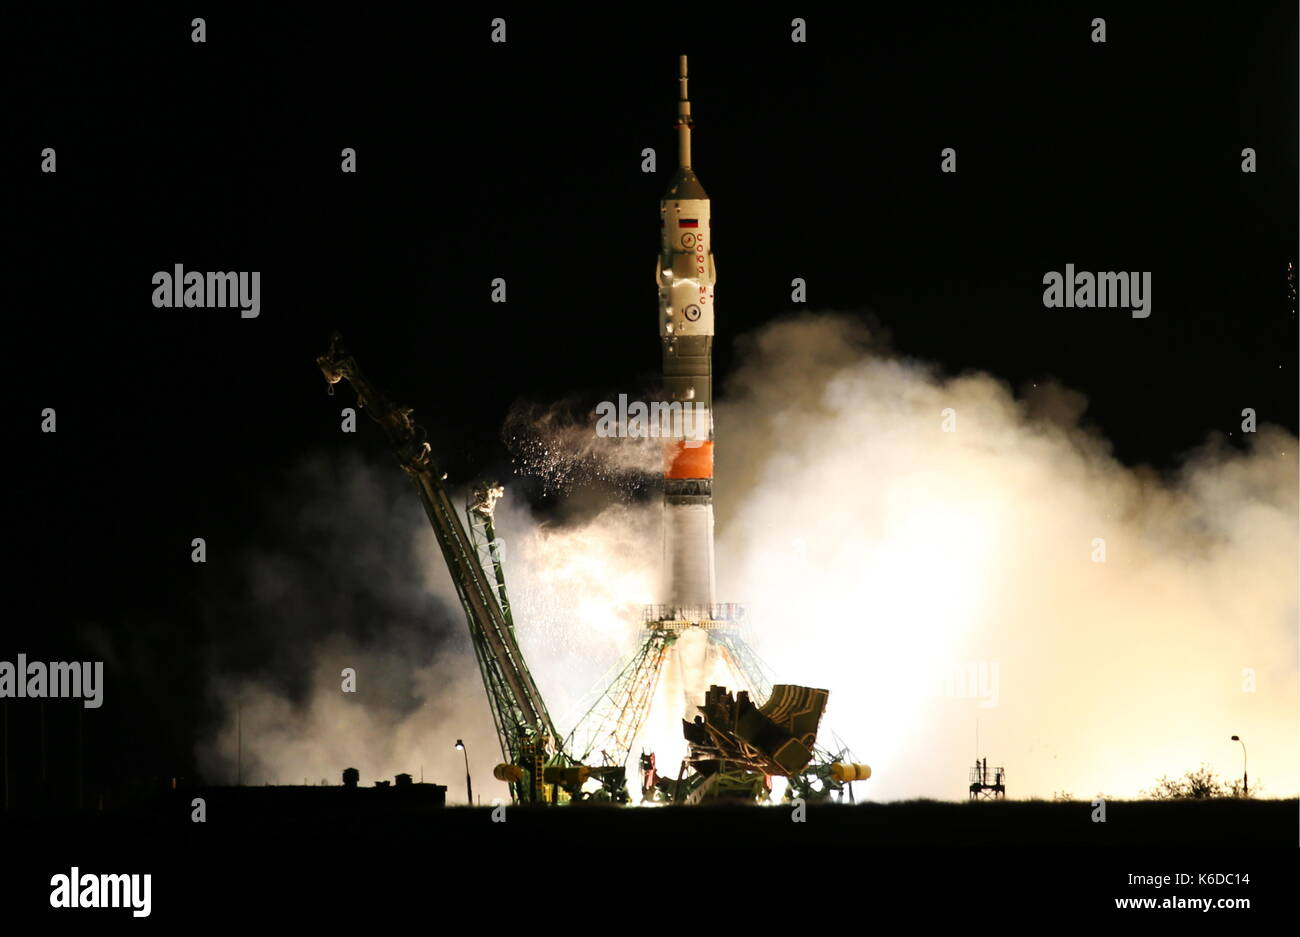 KAZAKHSTAN - SEPTEMBER 13, 2017: A Soyuz-FG rocket booster carrying the Soyuz MS-06 spacecraft with the ISS Expedition - Stock Image